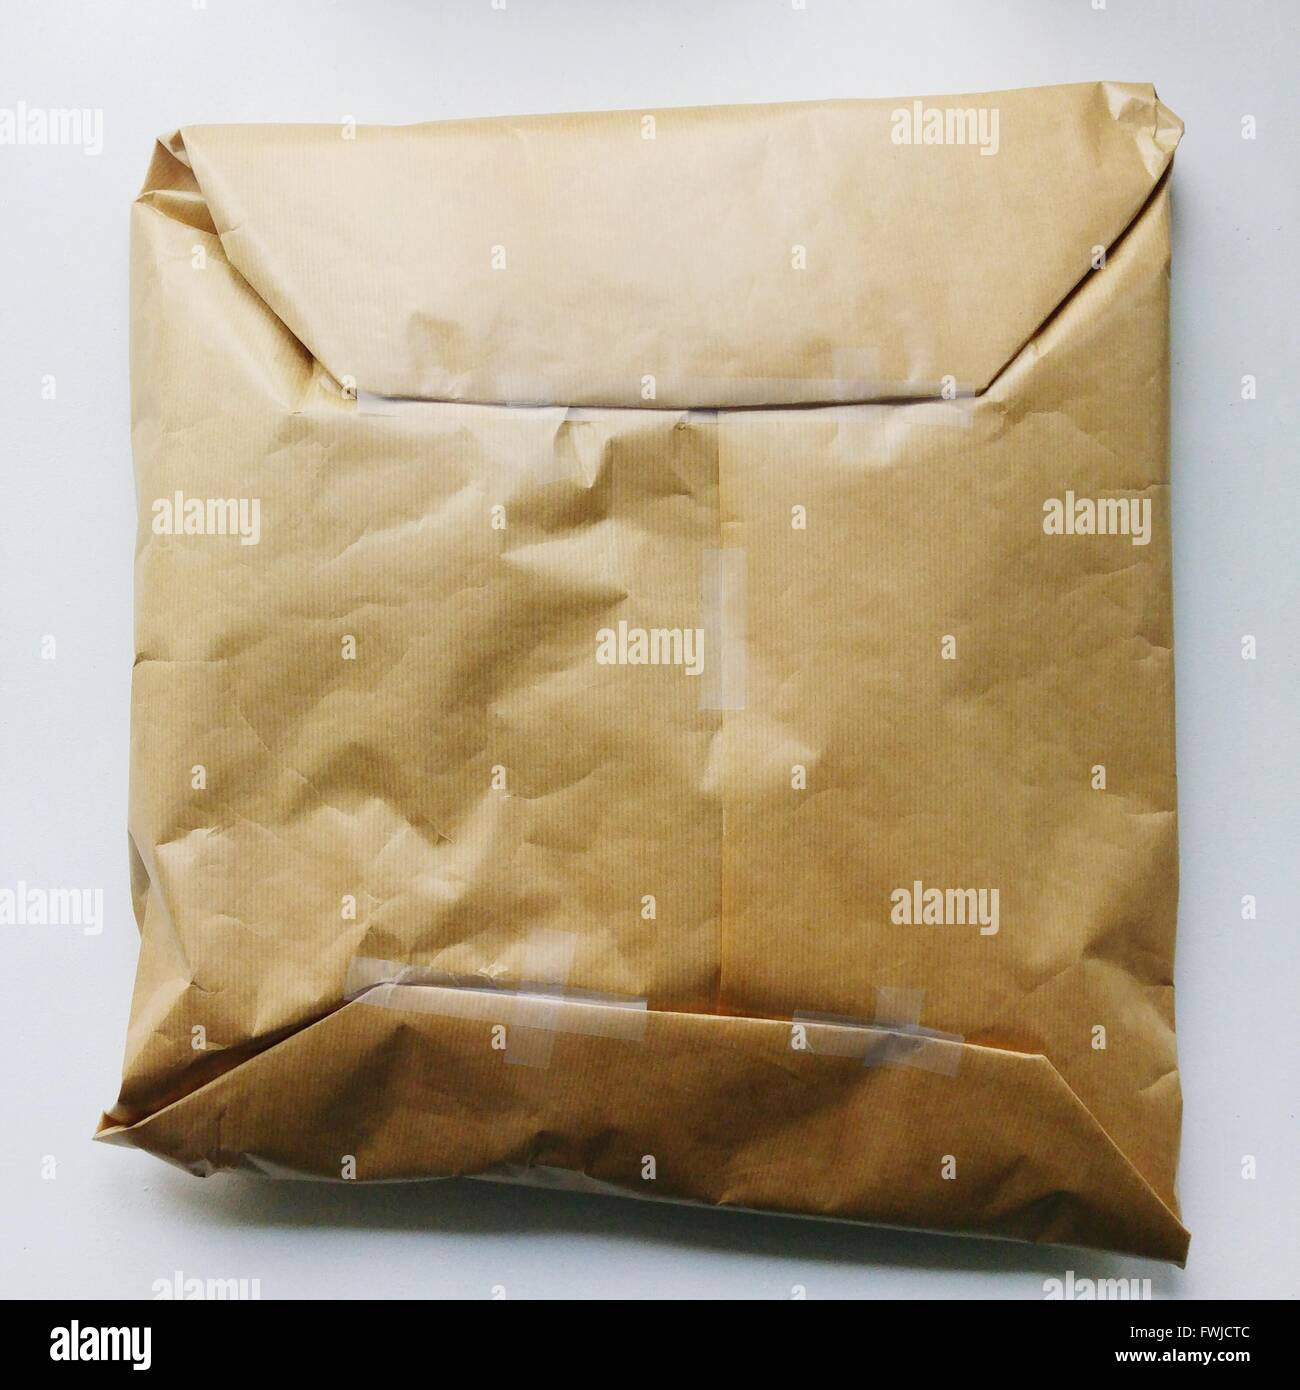 Close-Up Of Package Against White Background - Stock Image